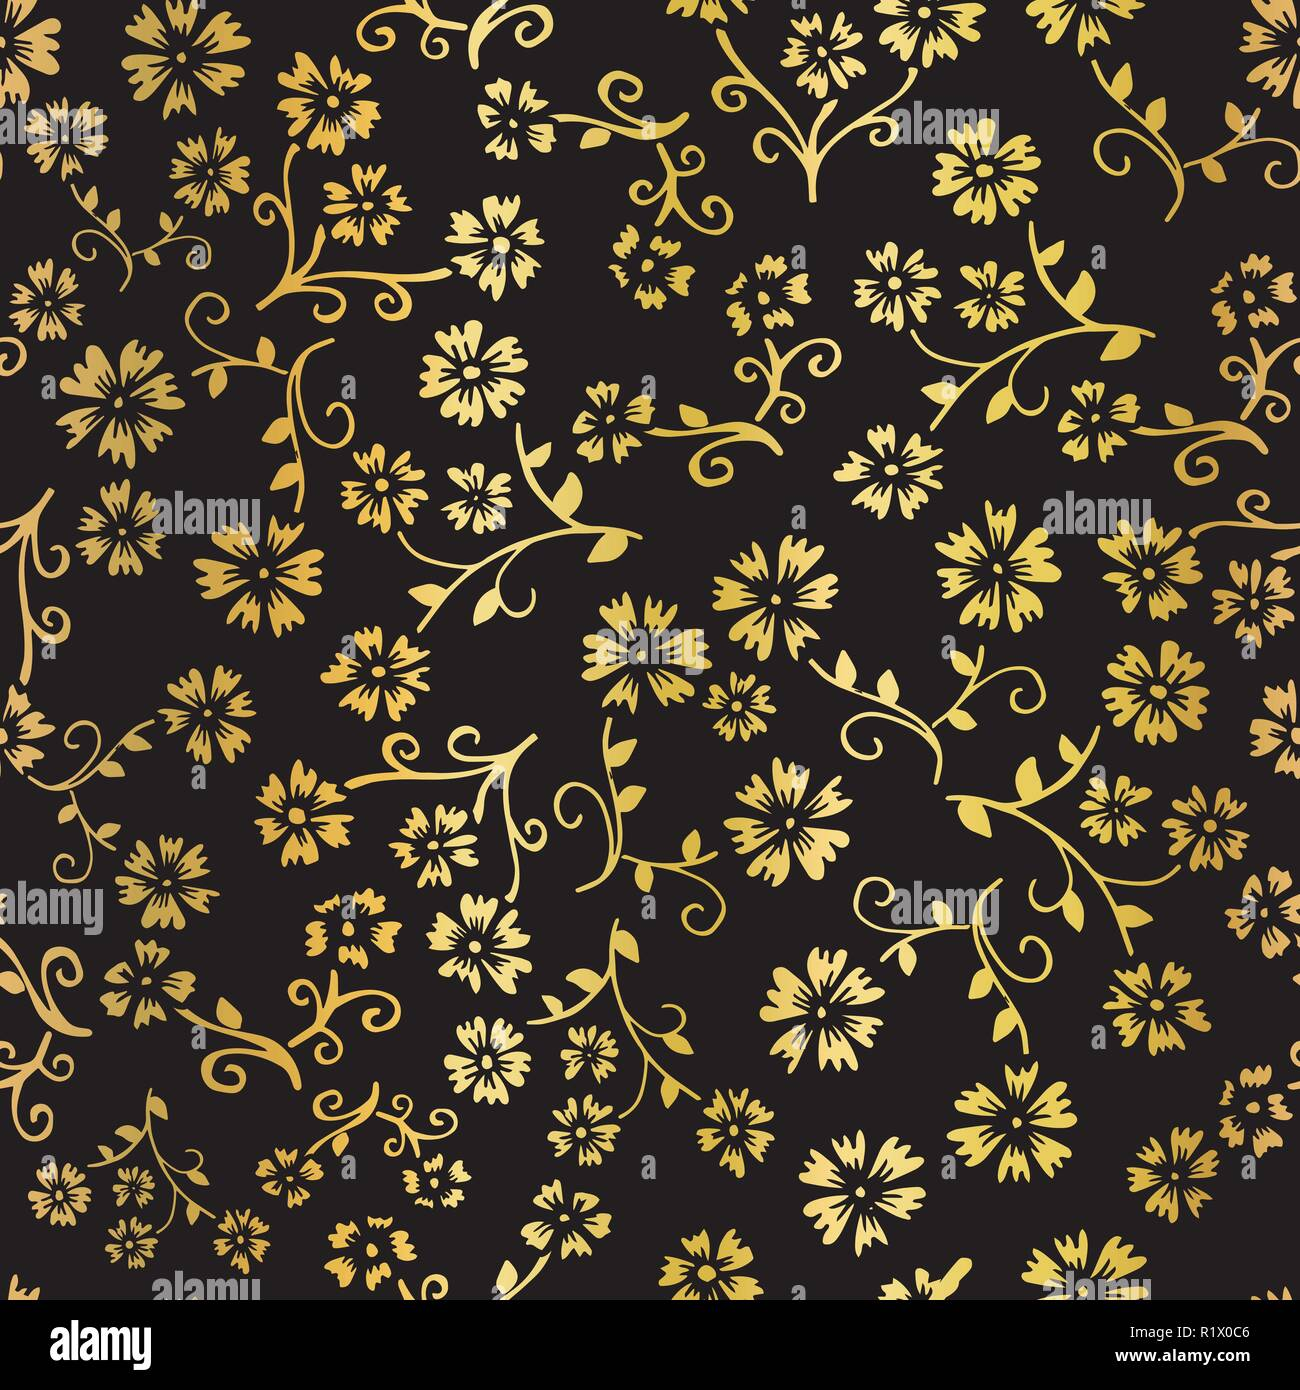 Gold Foil Flower Vector Seamless Pattern Background Elegant Golden